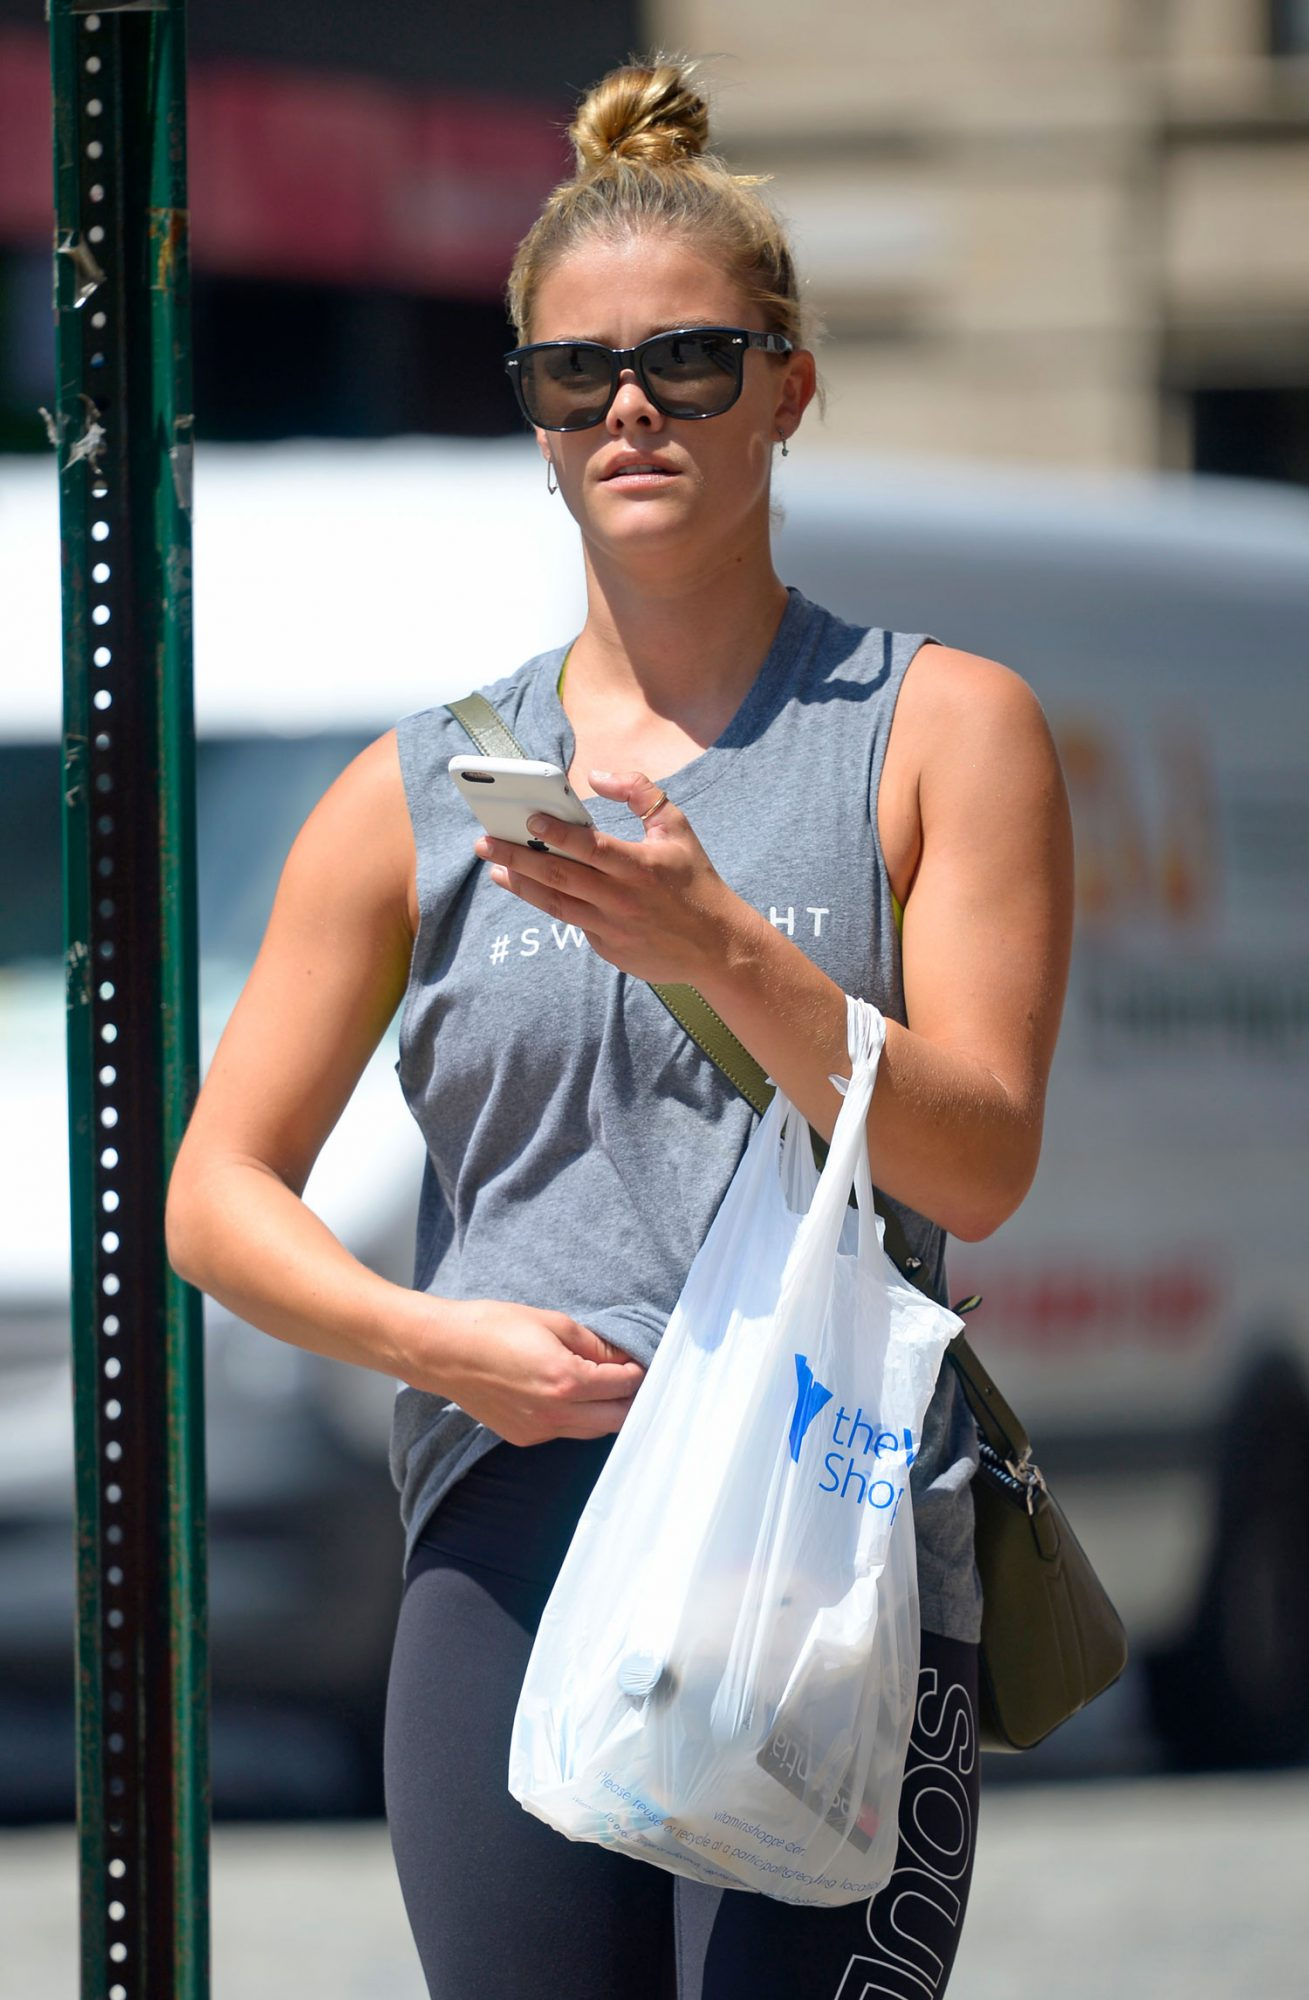 Swipe Right for Nina Agdal seen carrying takeout food after workout in Tribeca, New York City